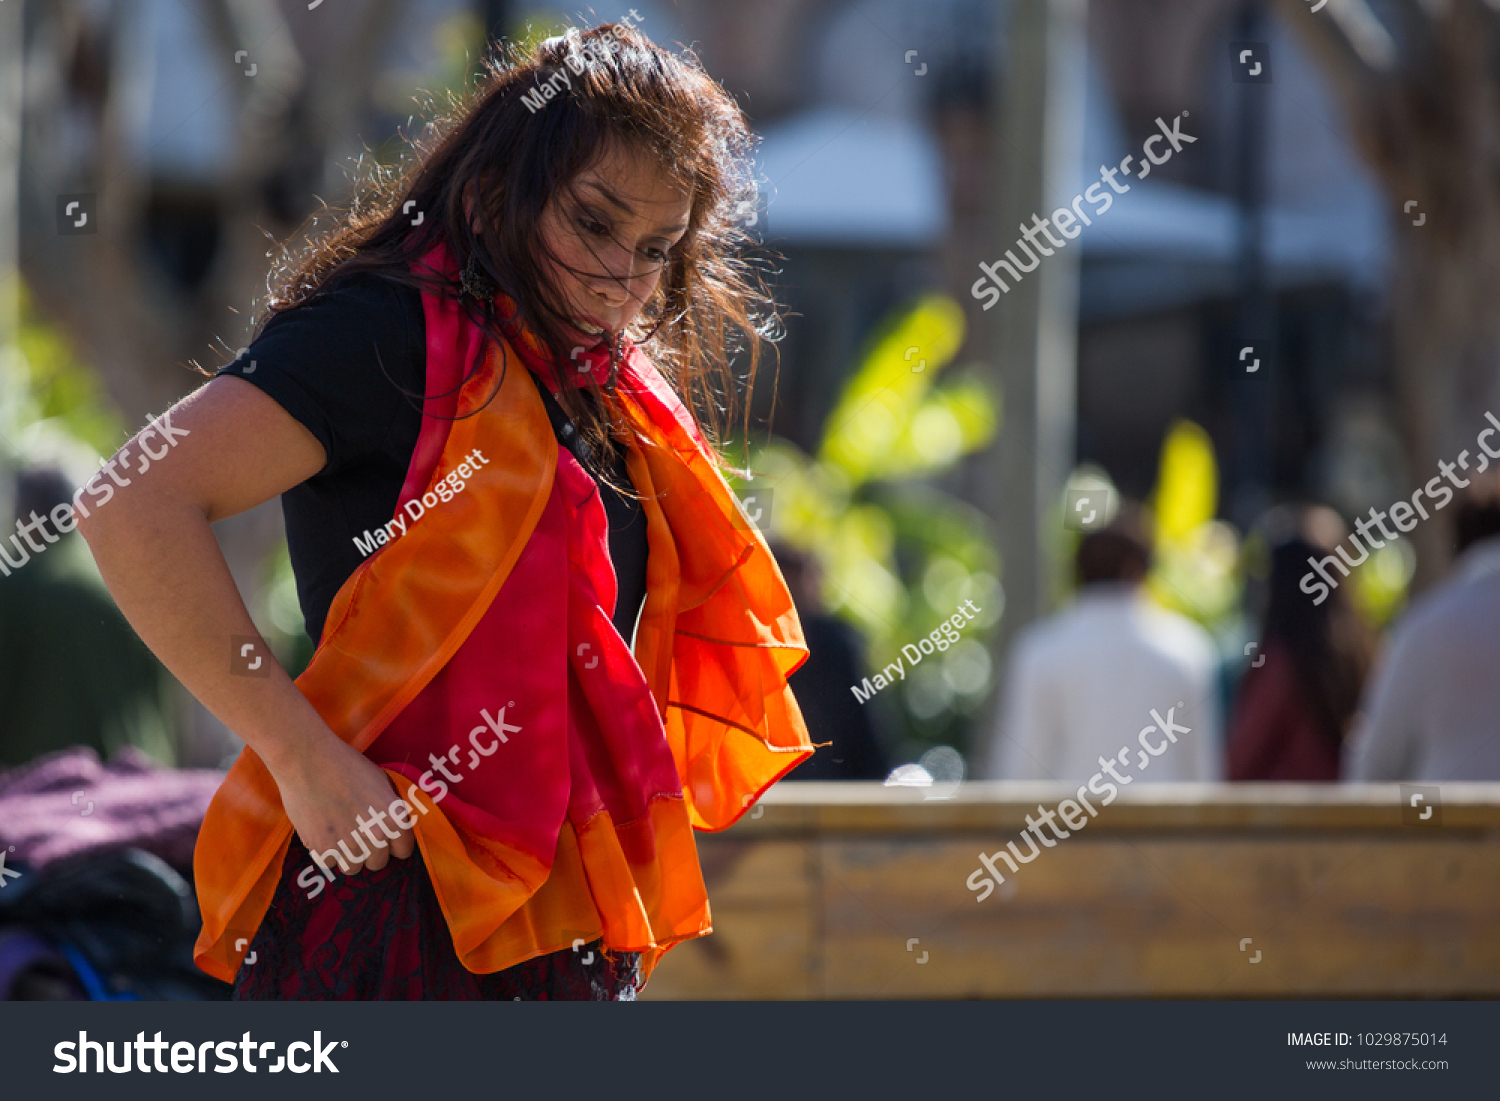 0df29d3da0c0 Seville Andalusia Spain February 8 2017 Stock Photo (Edit Now ...